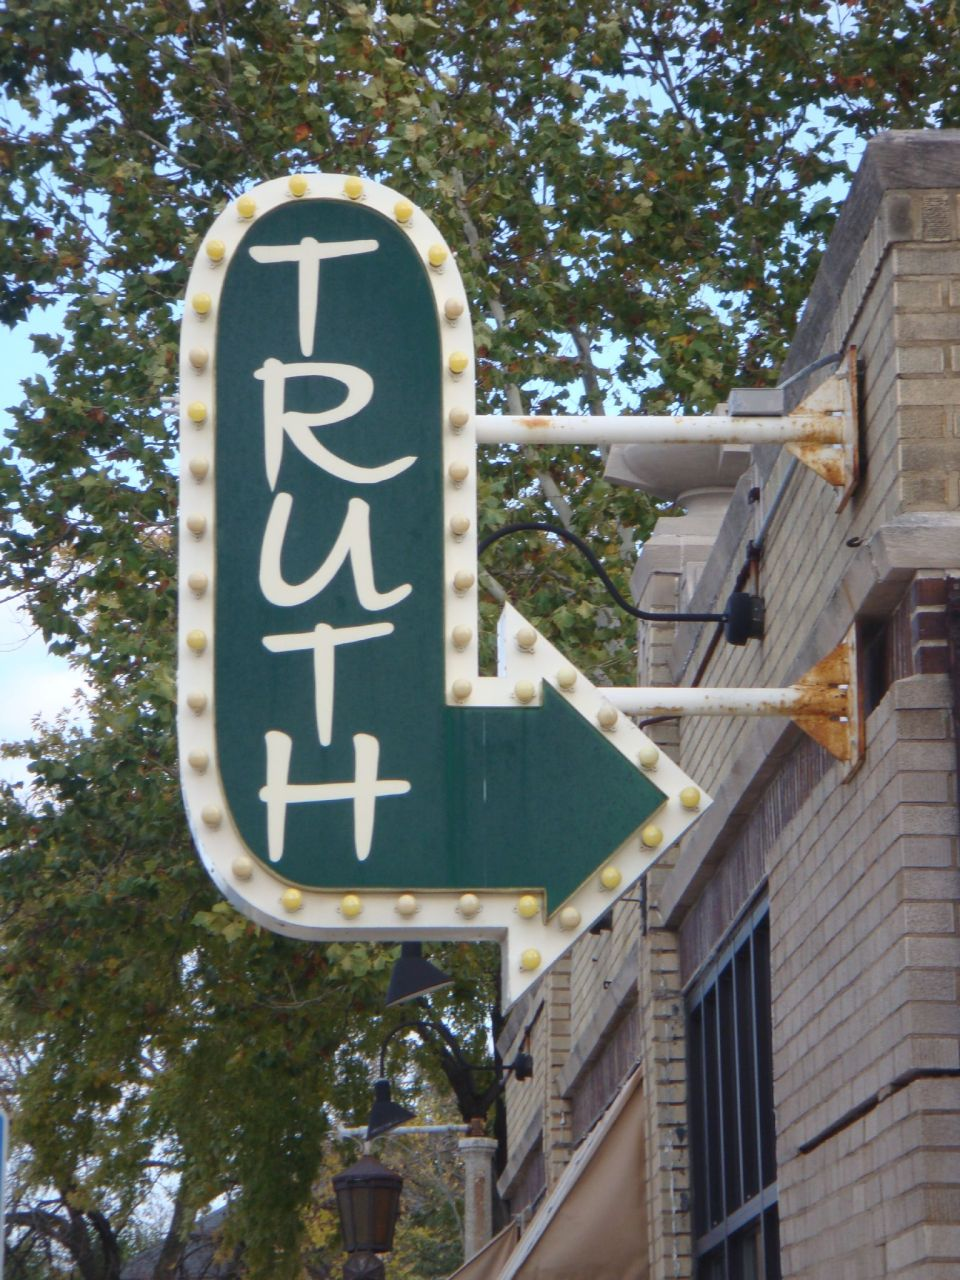 Truth Sign via loreshdw on Flickr -- CC